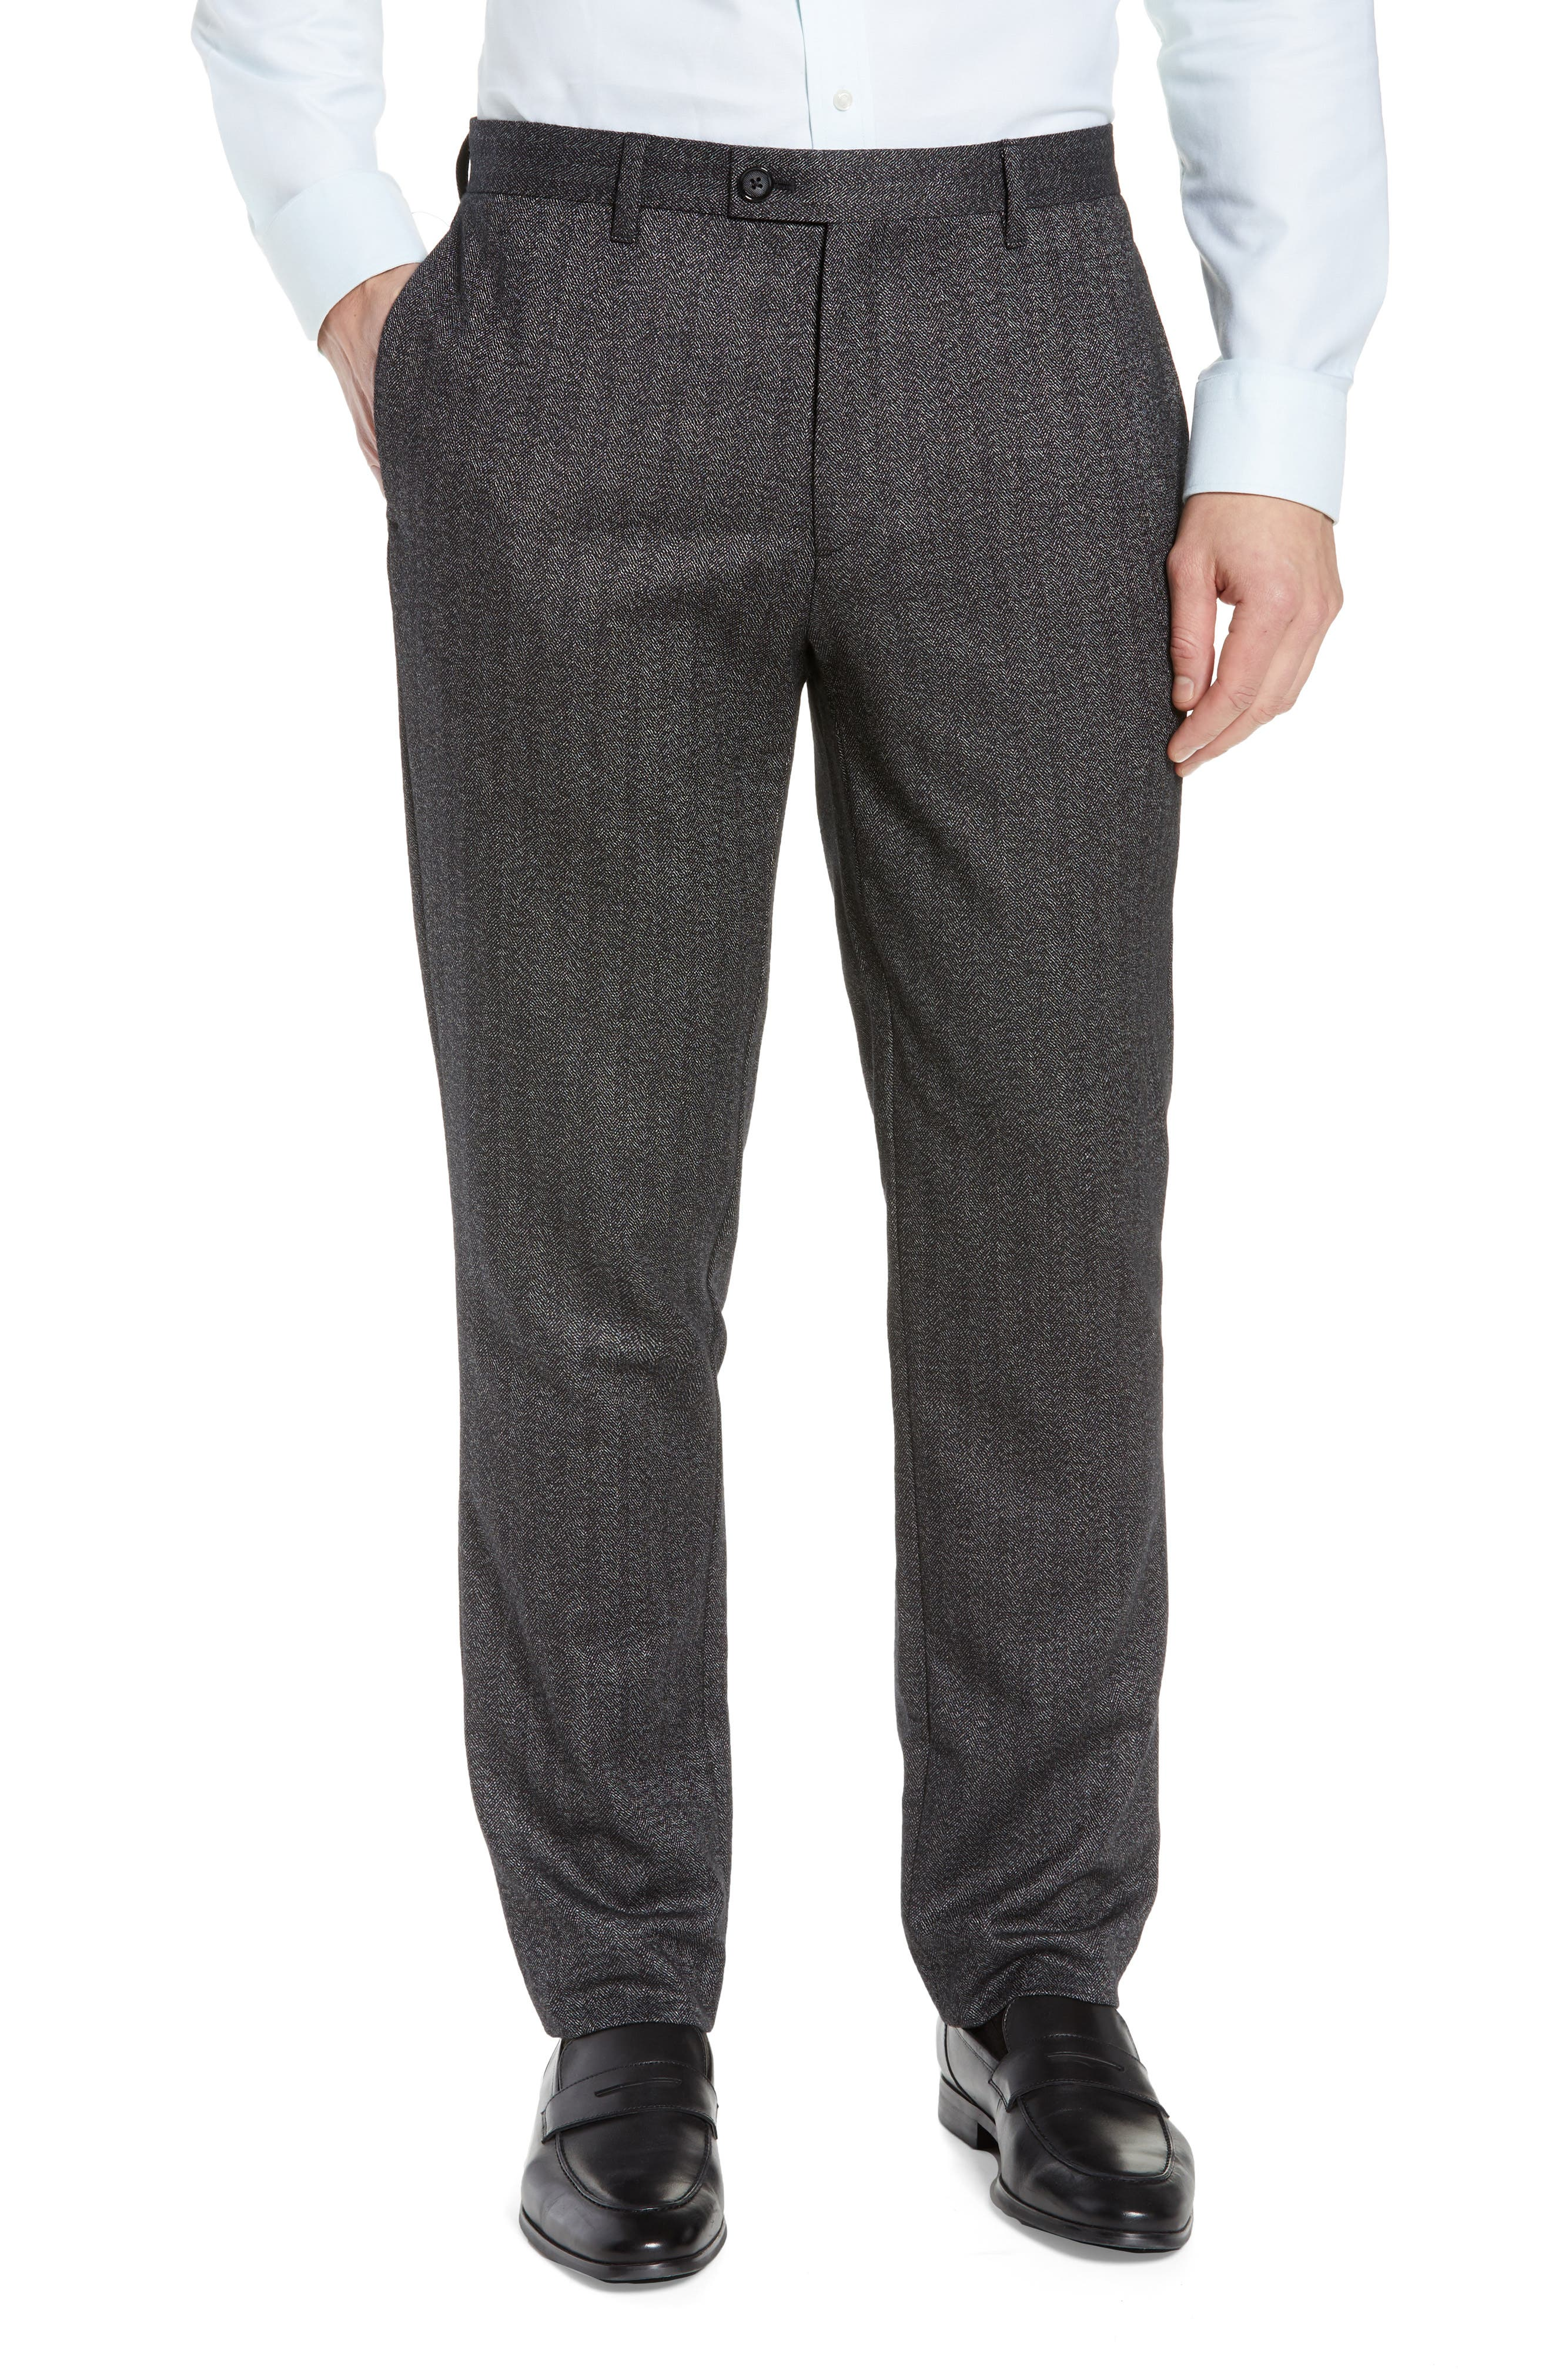 Wenstro Classic Fit Trousers,                             Main thumbnail 1, color,                             020